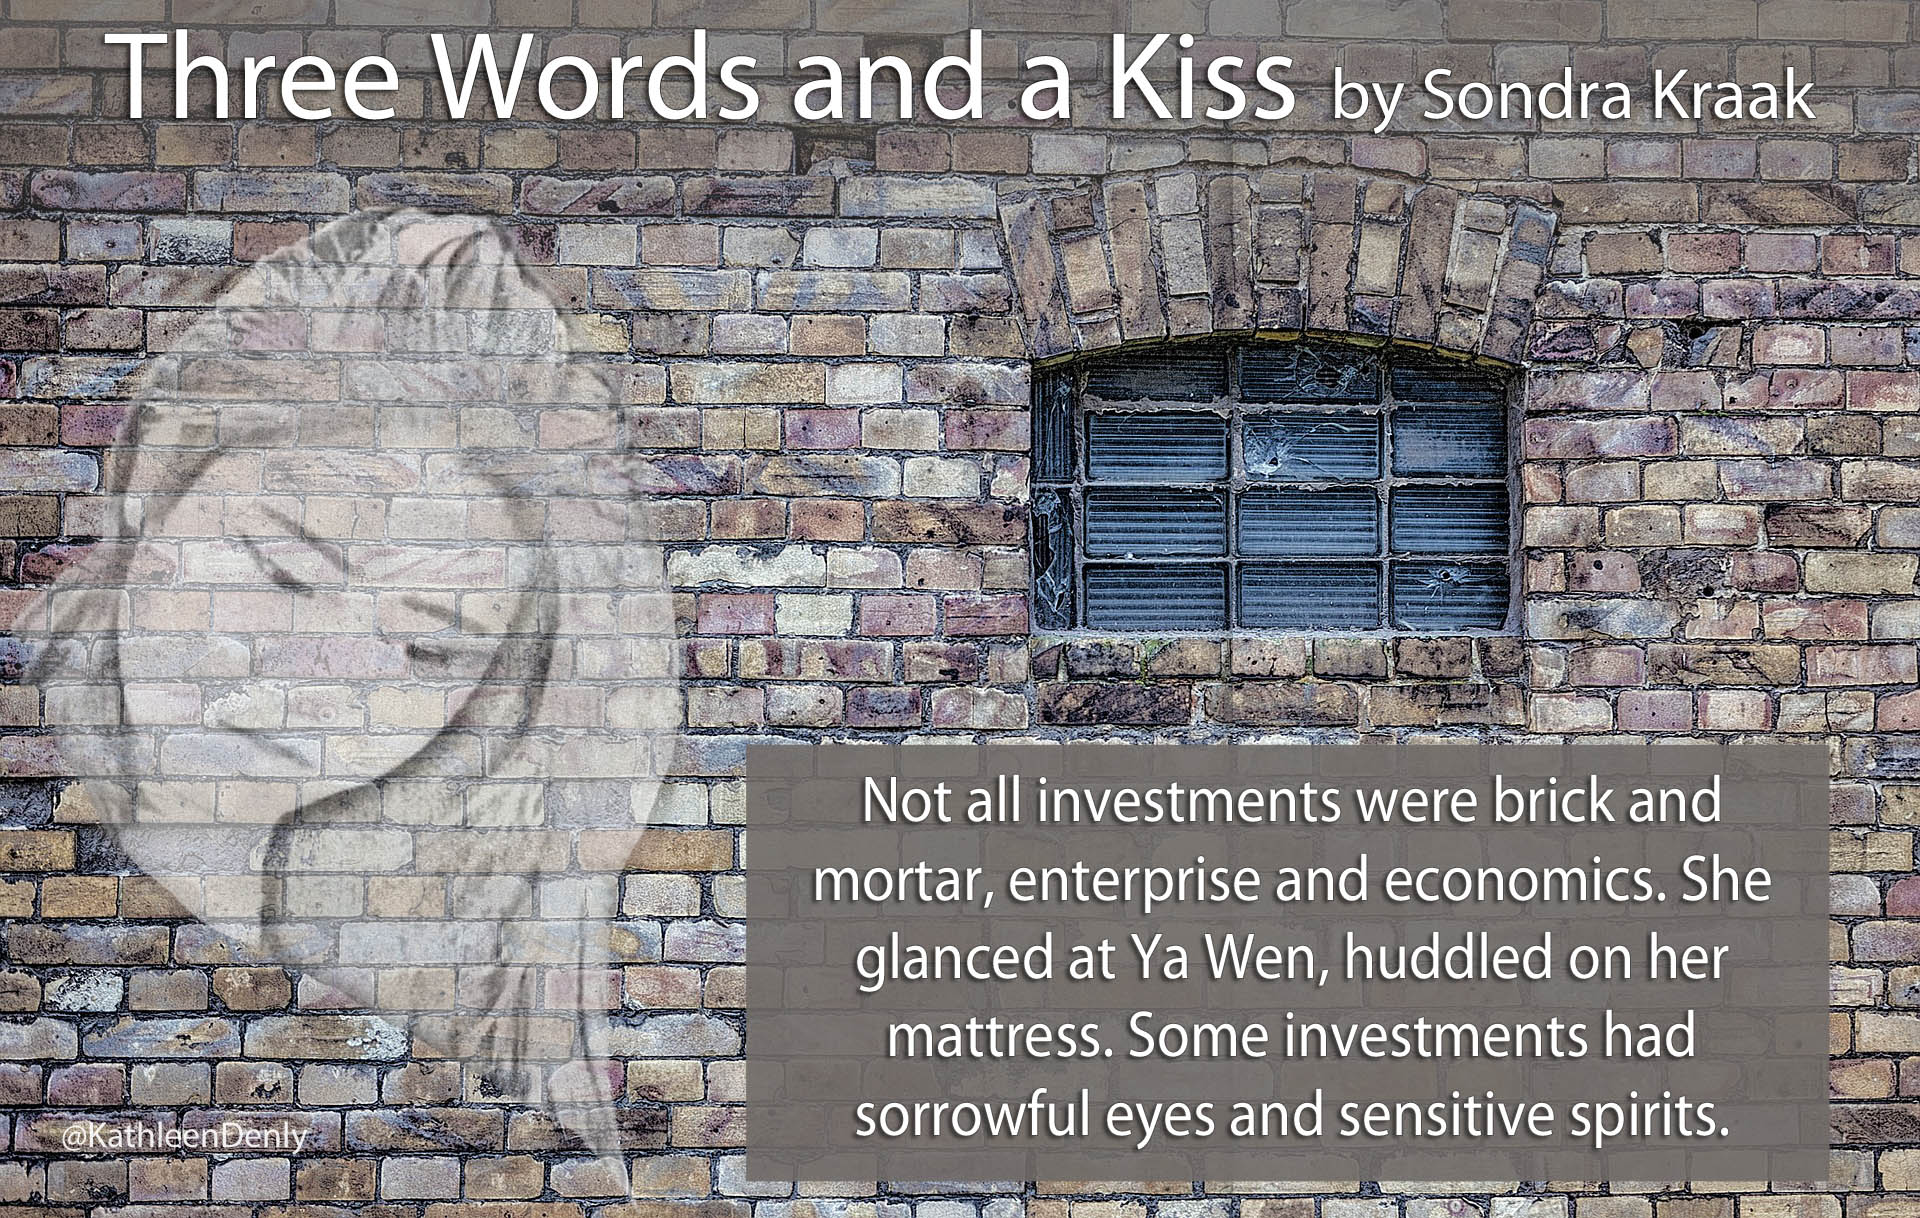 Book Quote Image - Three Words and a Kiss - Some Investments